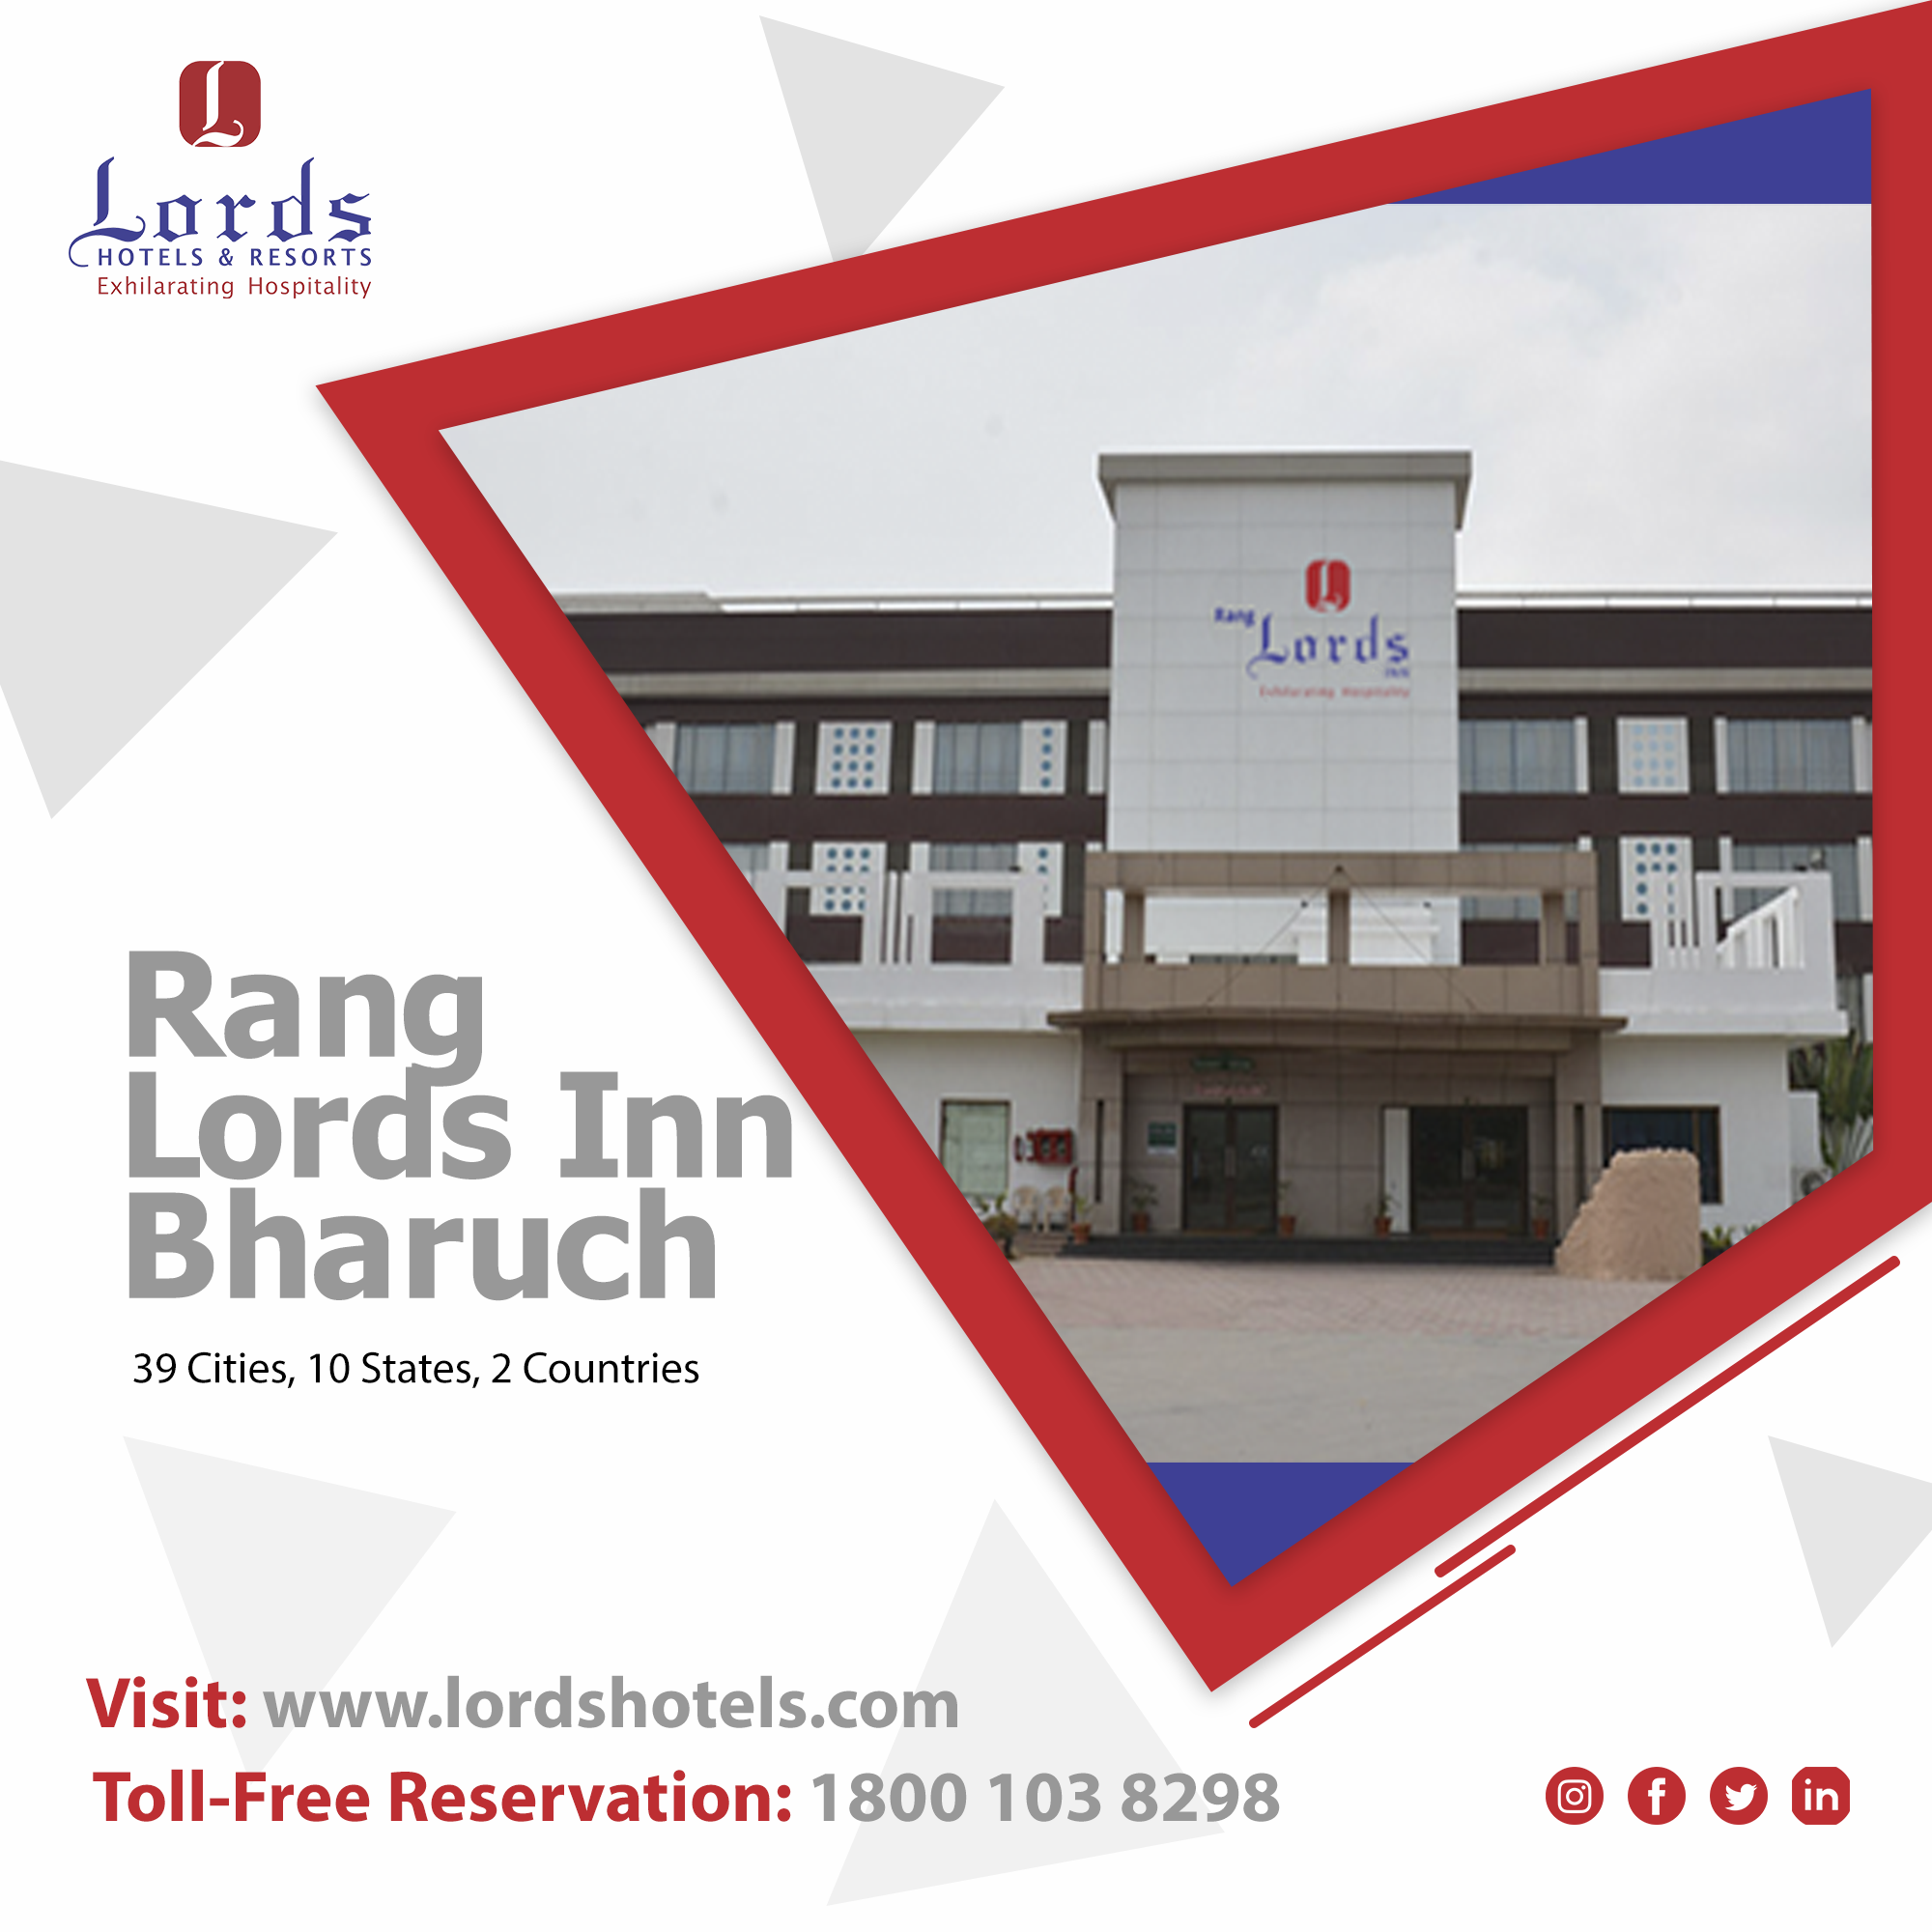 Rang Lords Inn Bharuch At Gujarat Is All Set To Open For